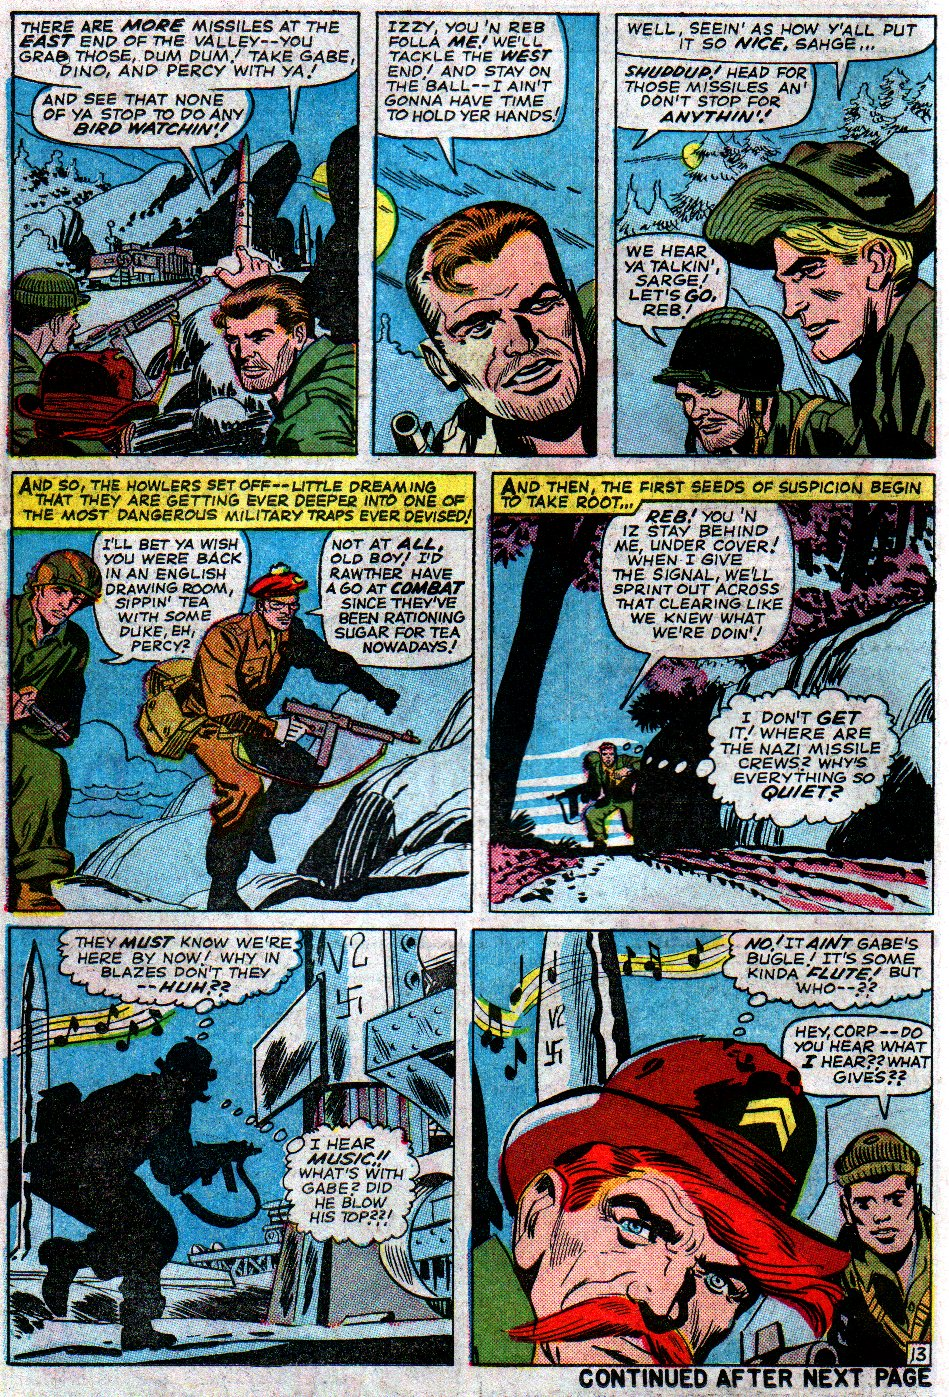 Read online Sgt. Fury comic -  Issue #14 - 18